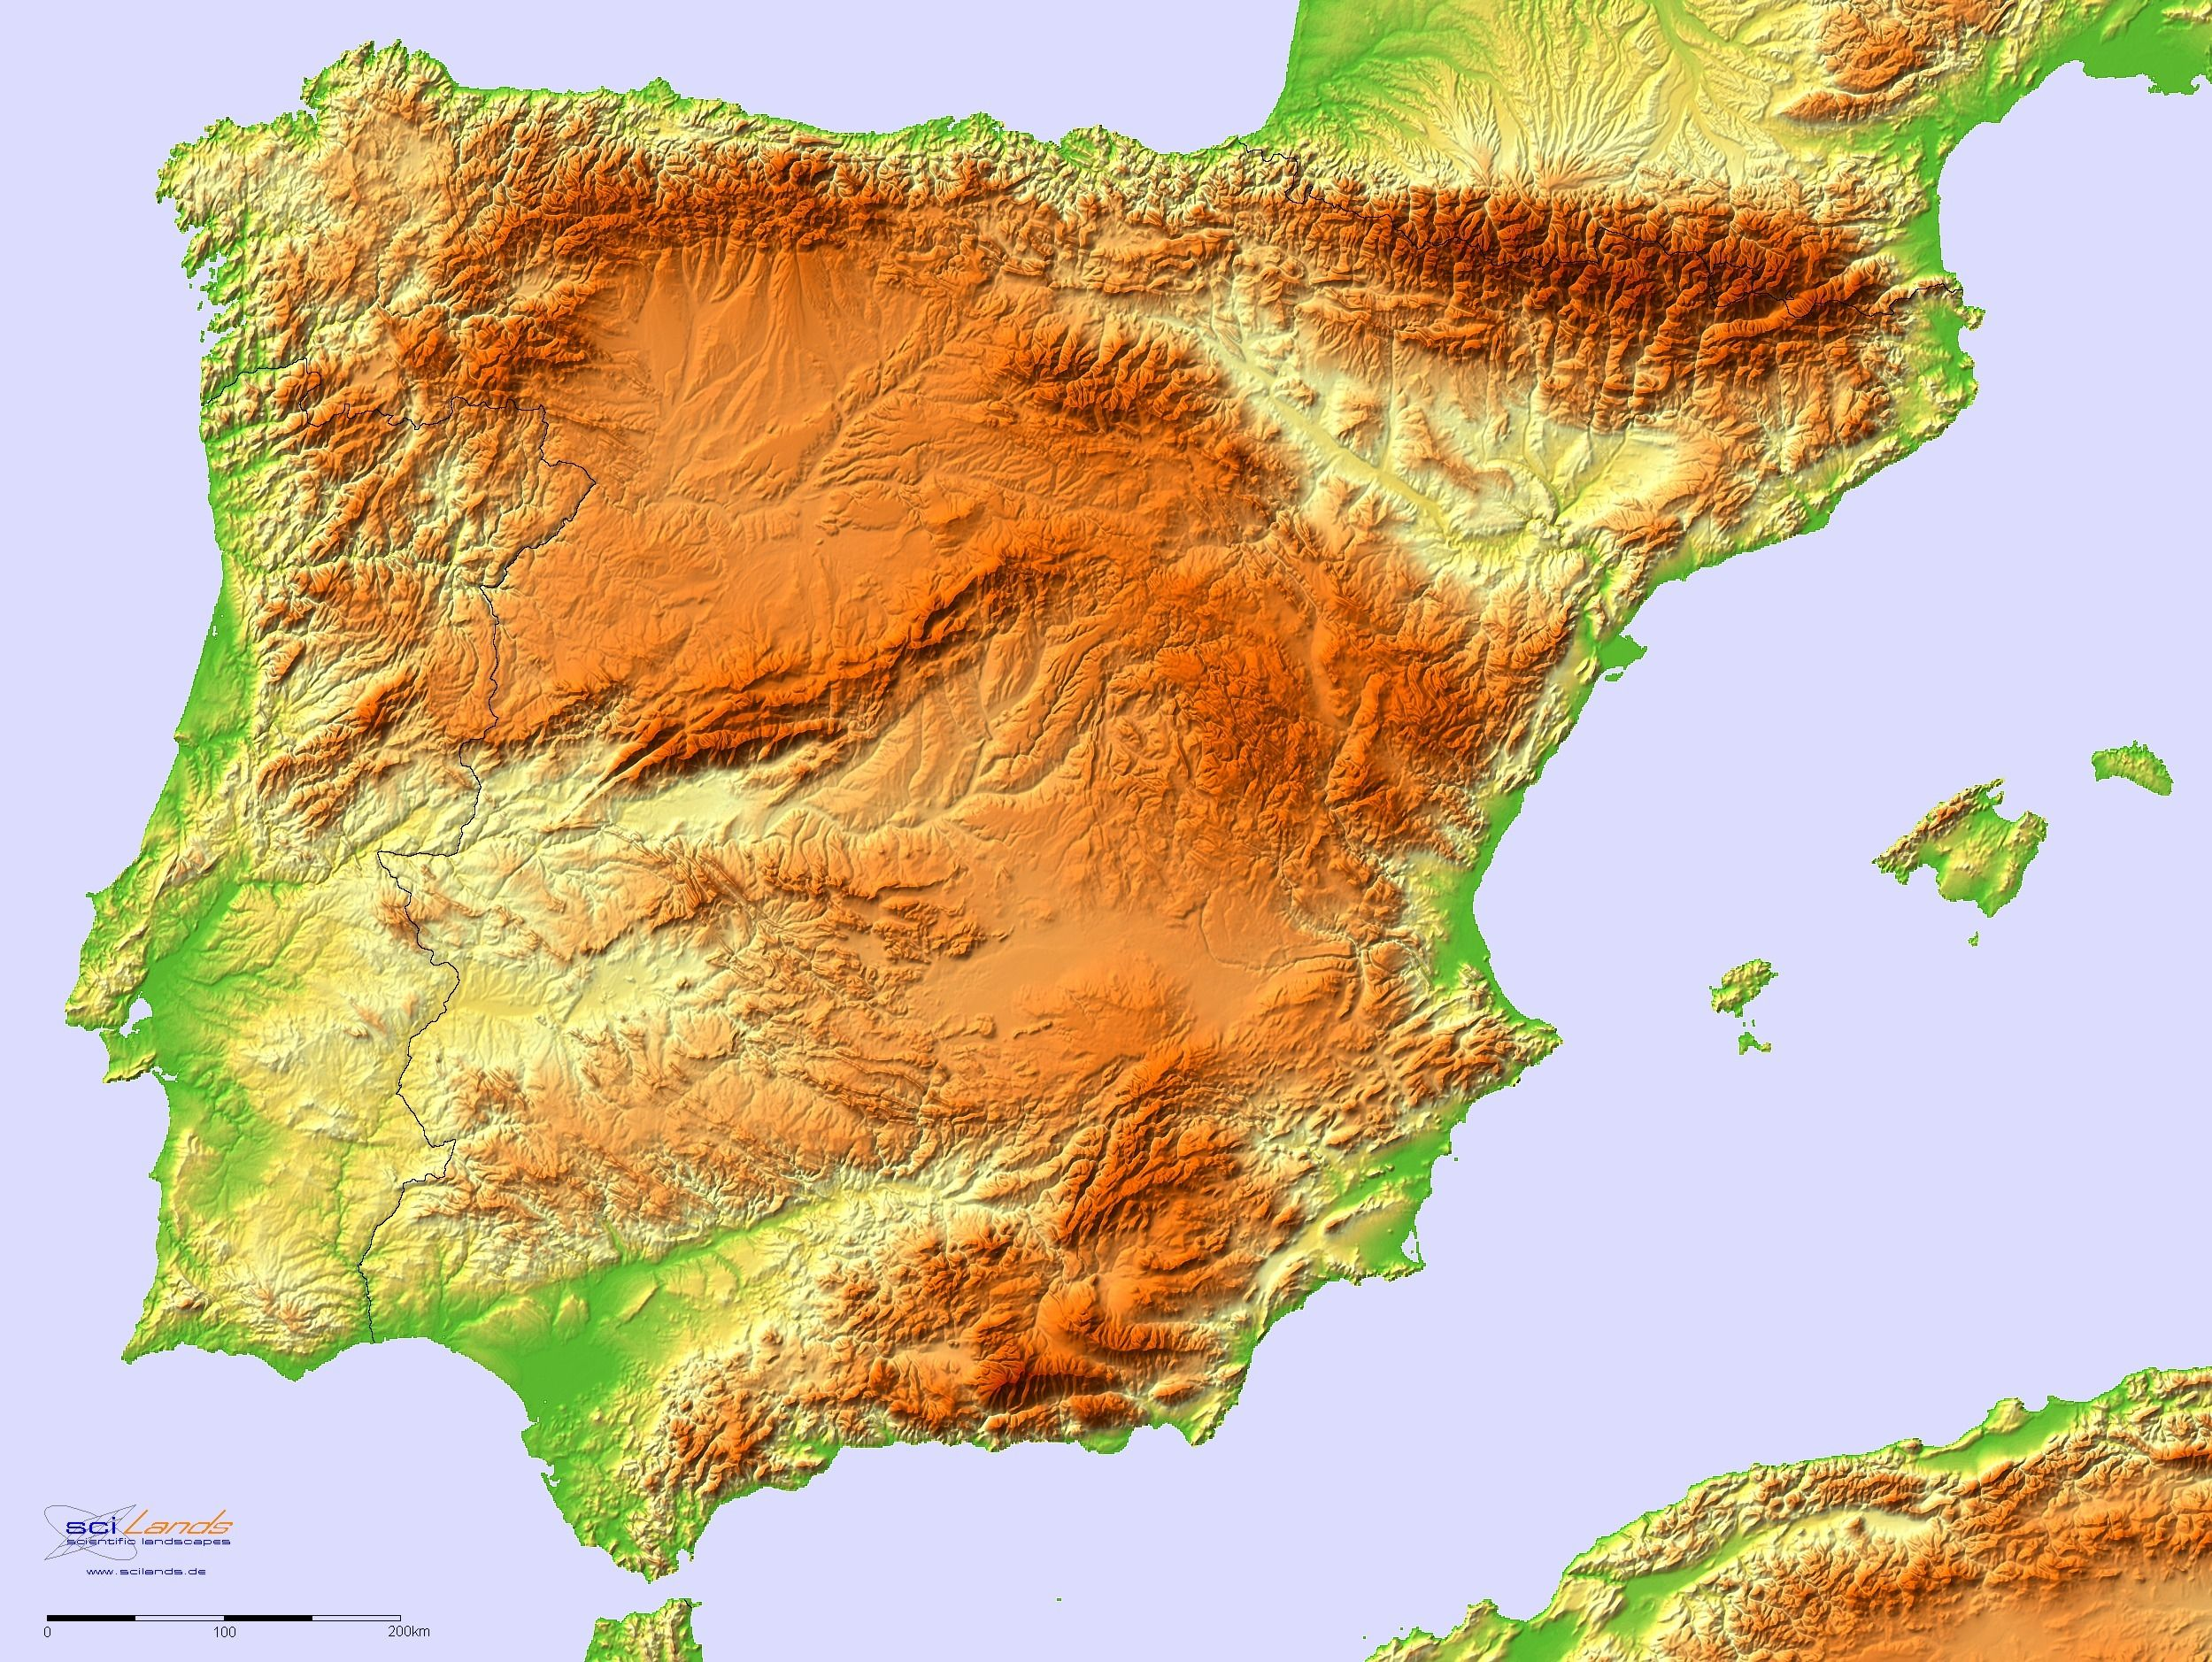 A detailed topographic map of the Iberian peninsula By Sci Lands